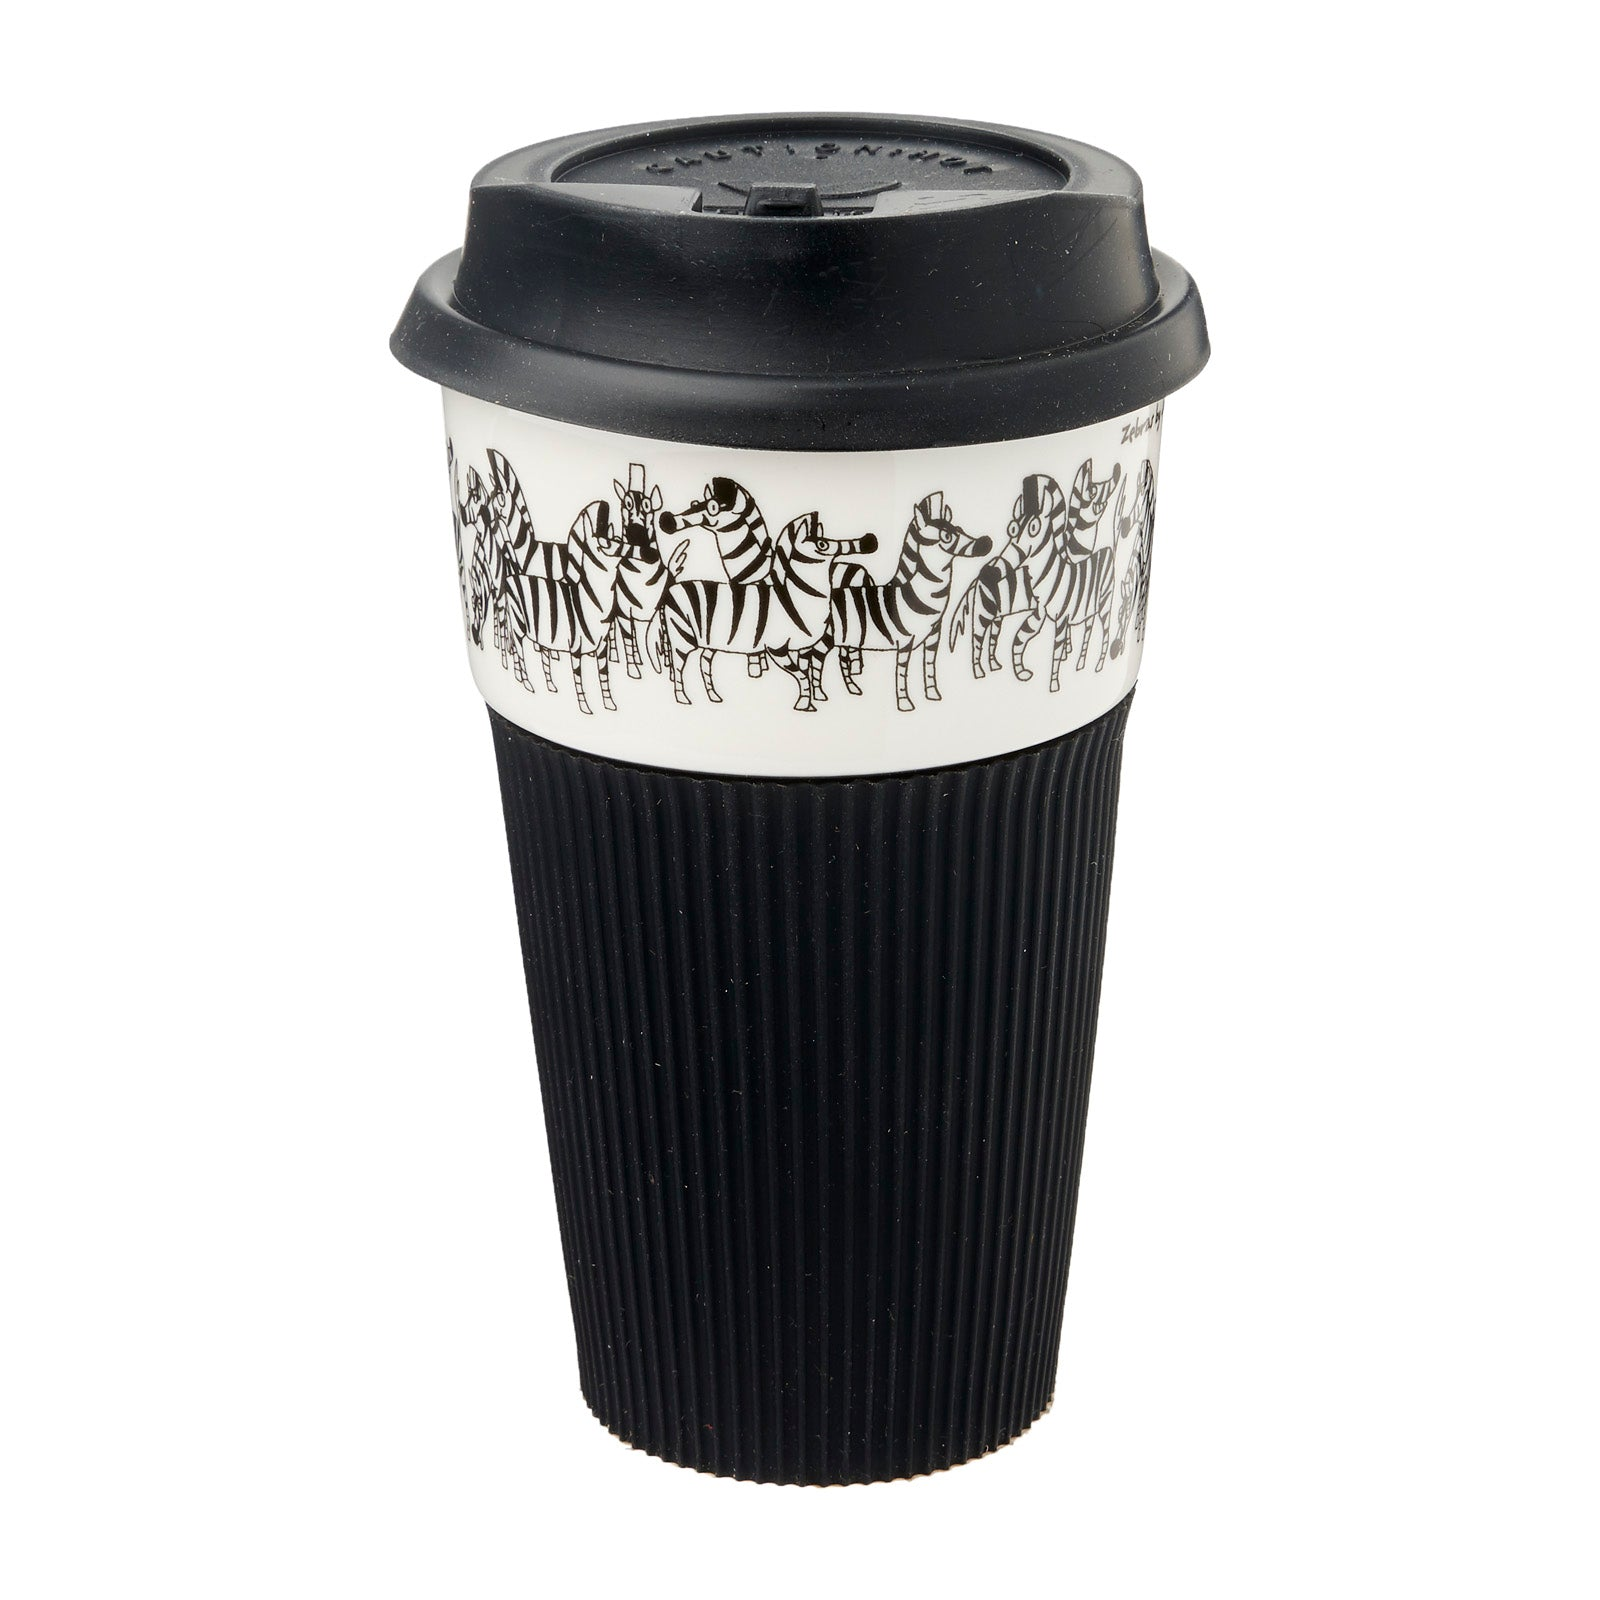 B&W Thermal Mug - Zebra